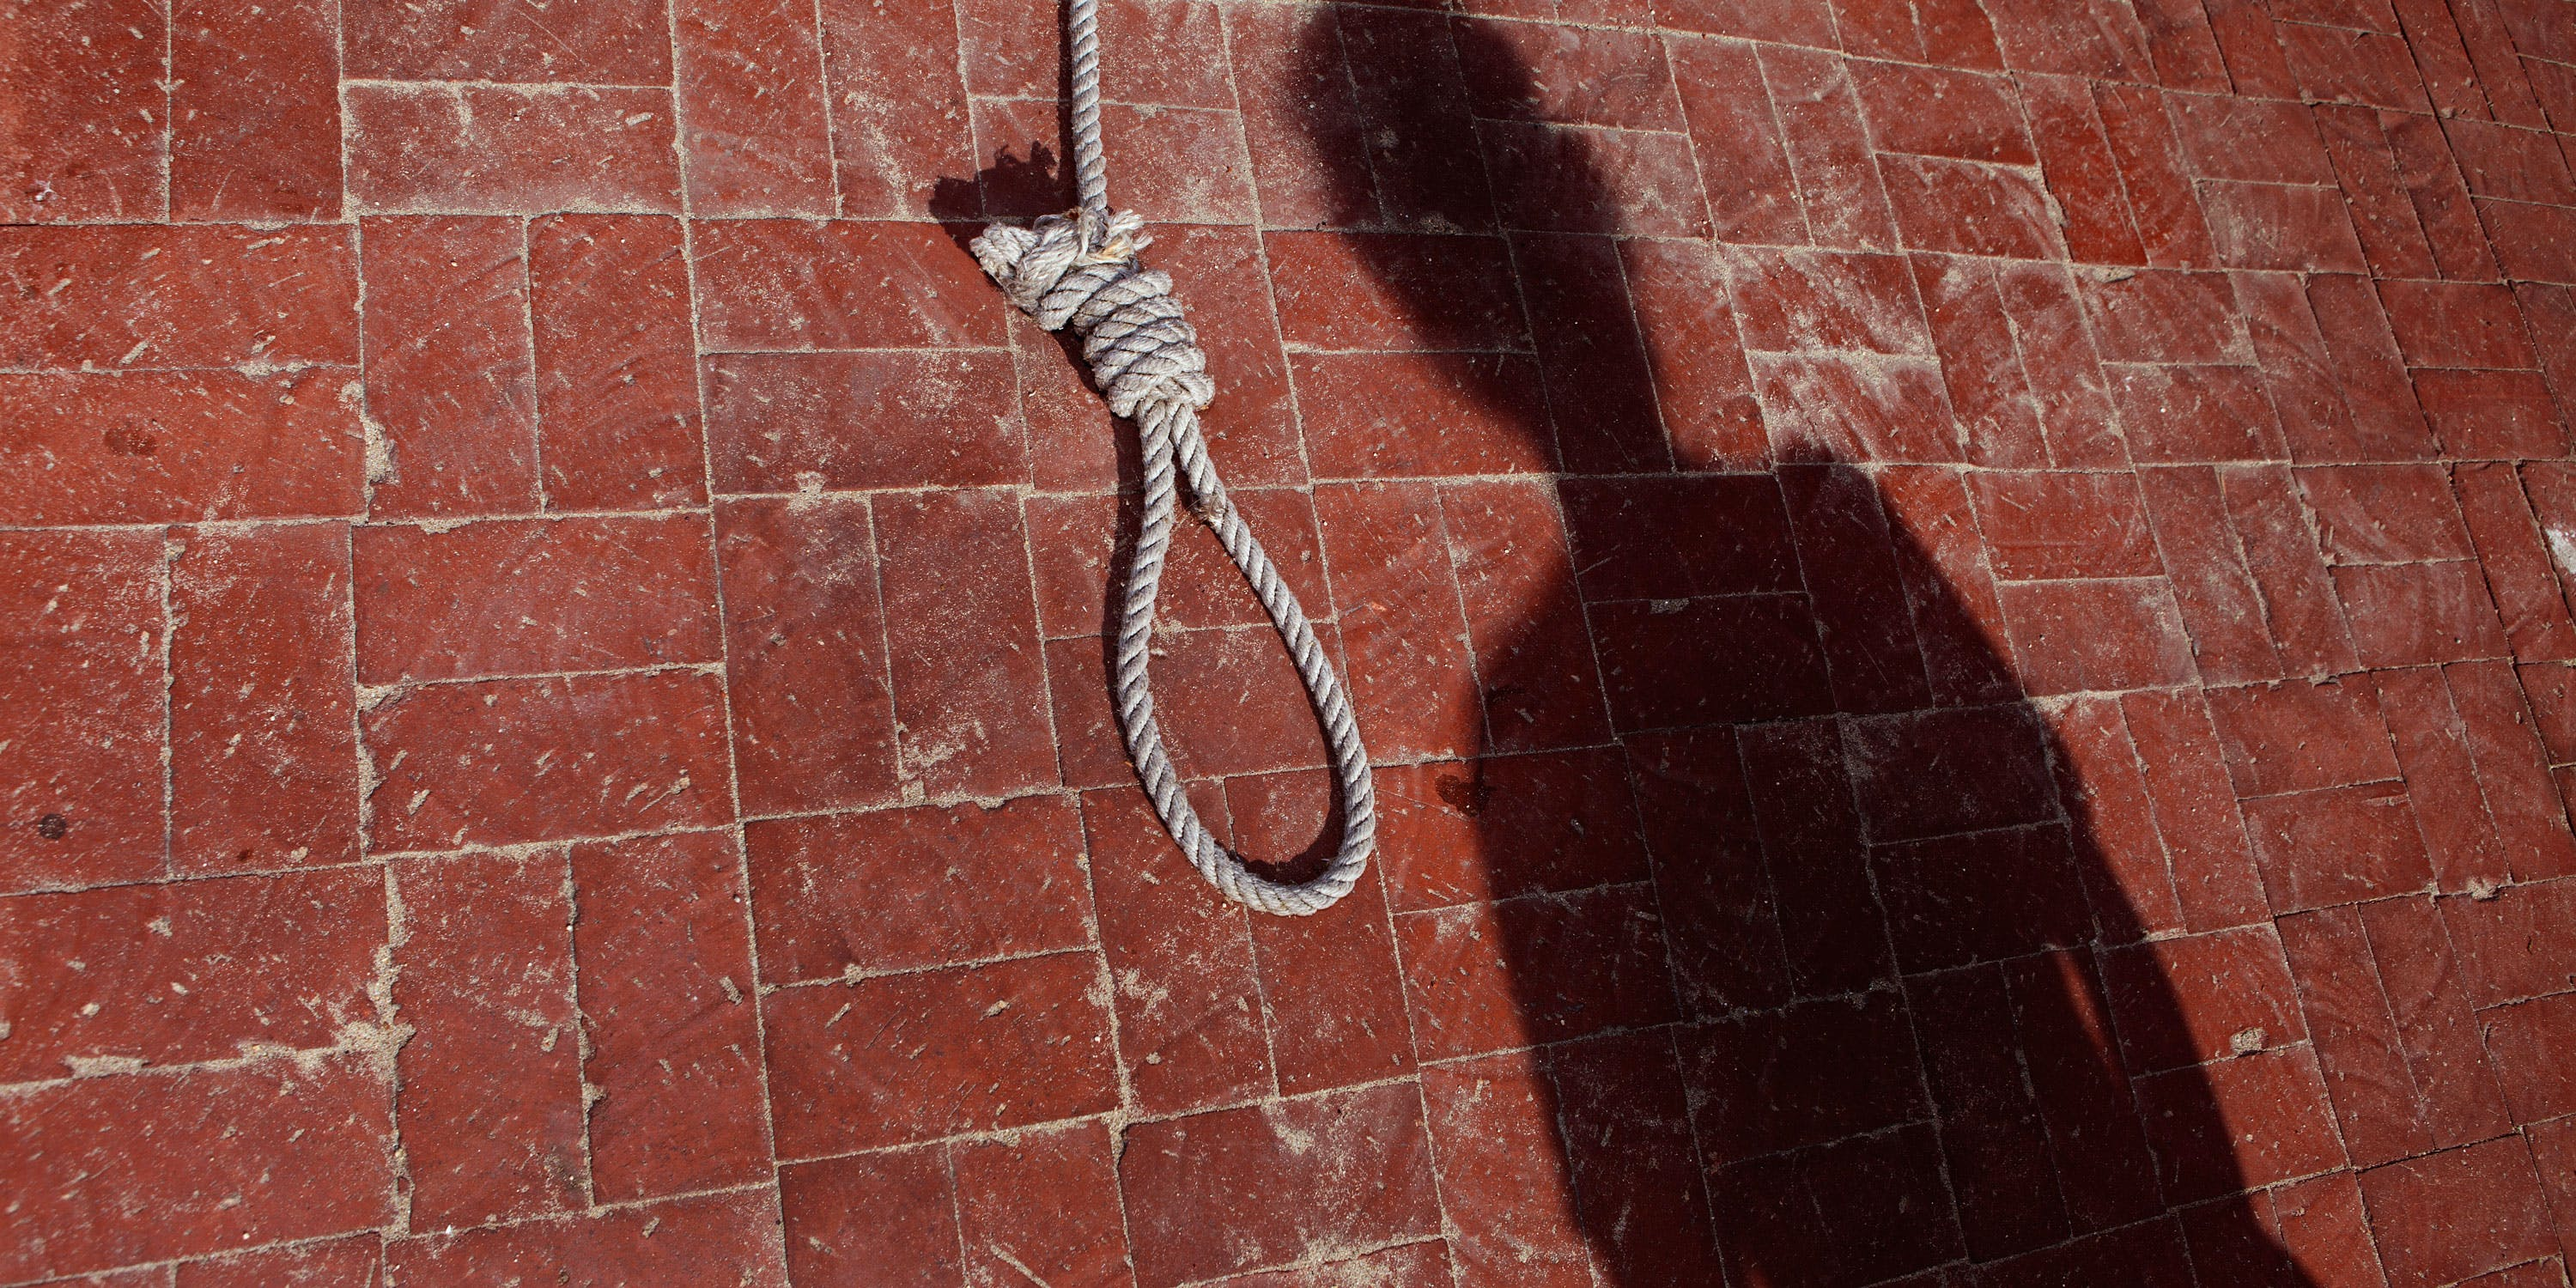 Malaysian Man Sentenced to Death for Cannabis Oil Given to Patients. Here, a shadow of a man is shown beside a noose